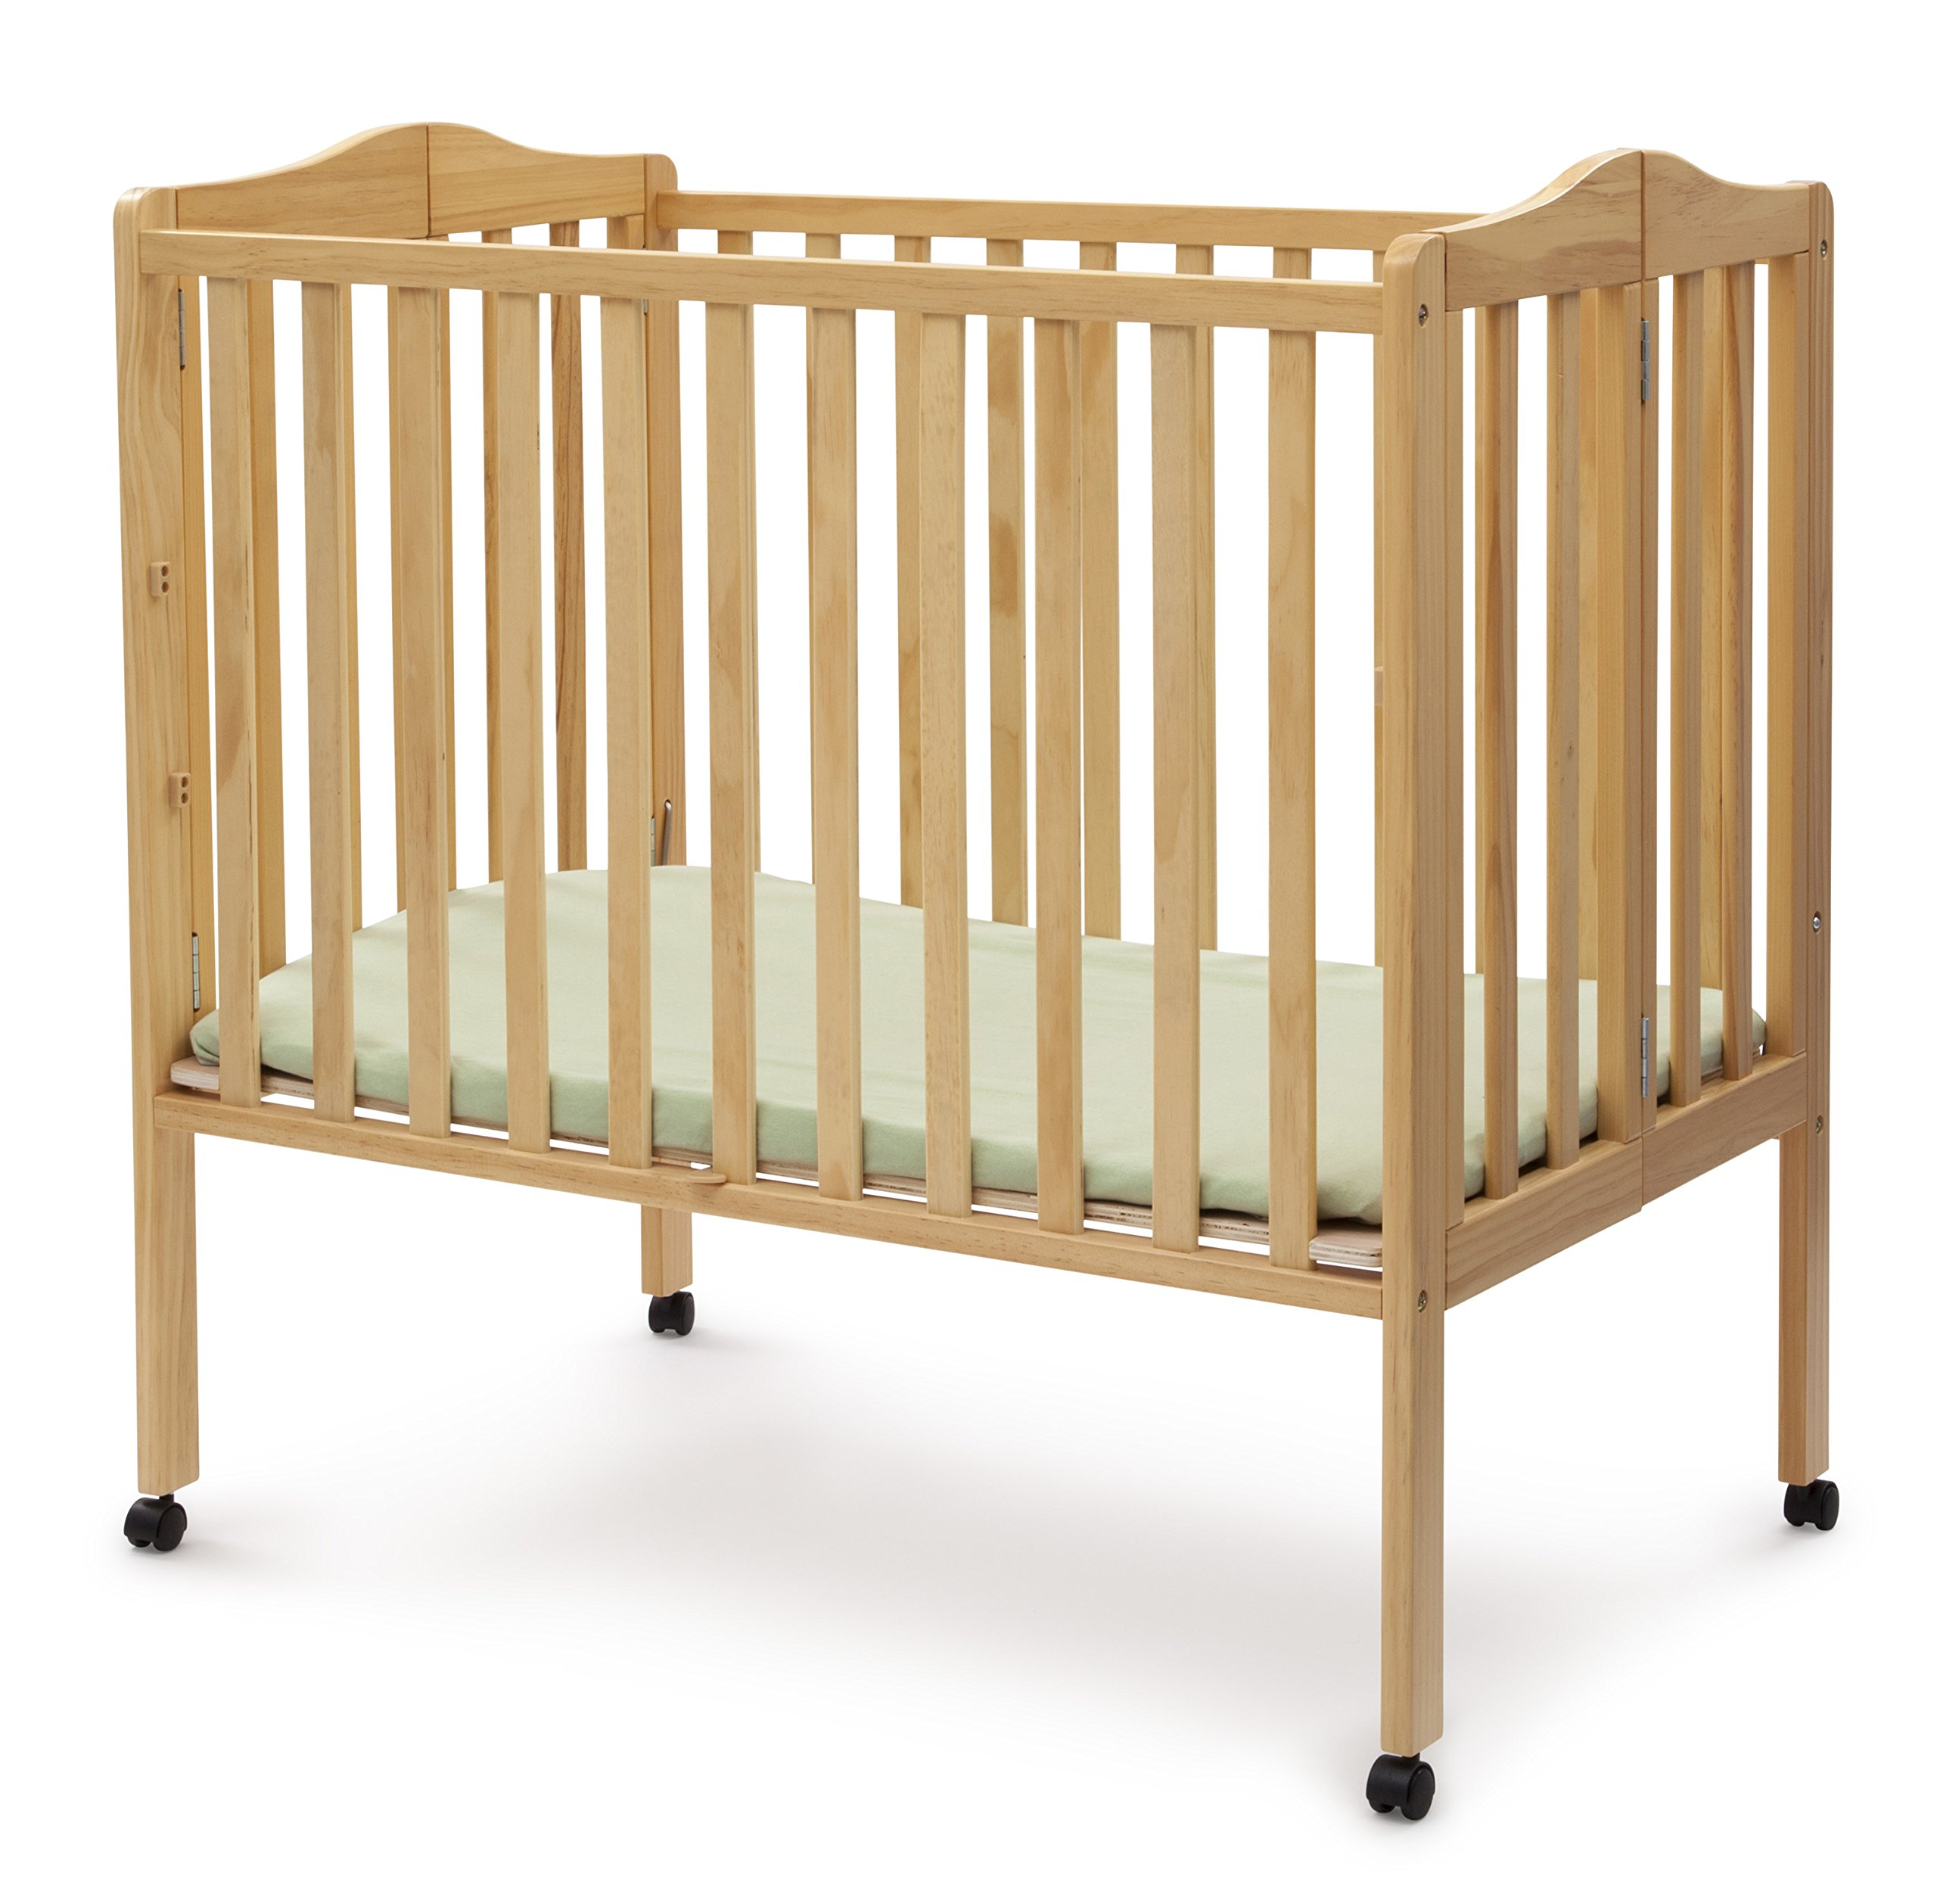 Delta Children Folding Portable Mini Crib with Mattress, Natural by Delta Children